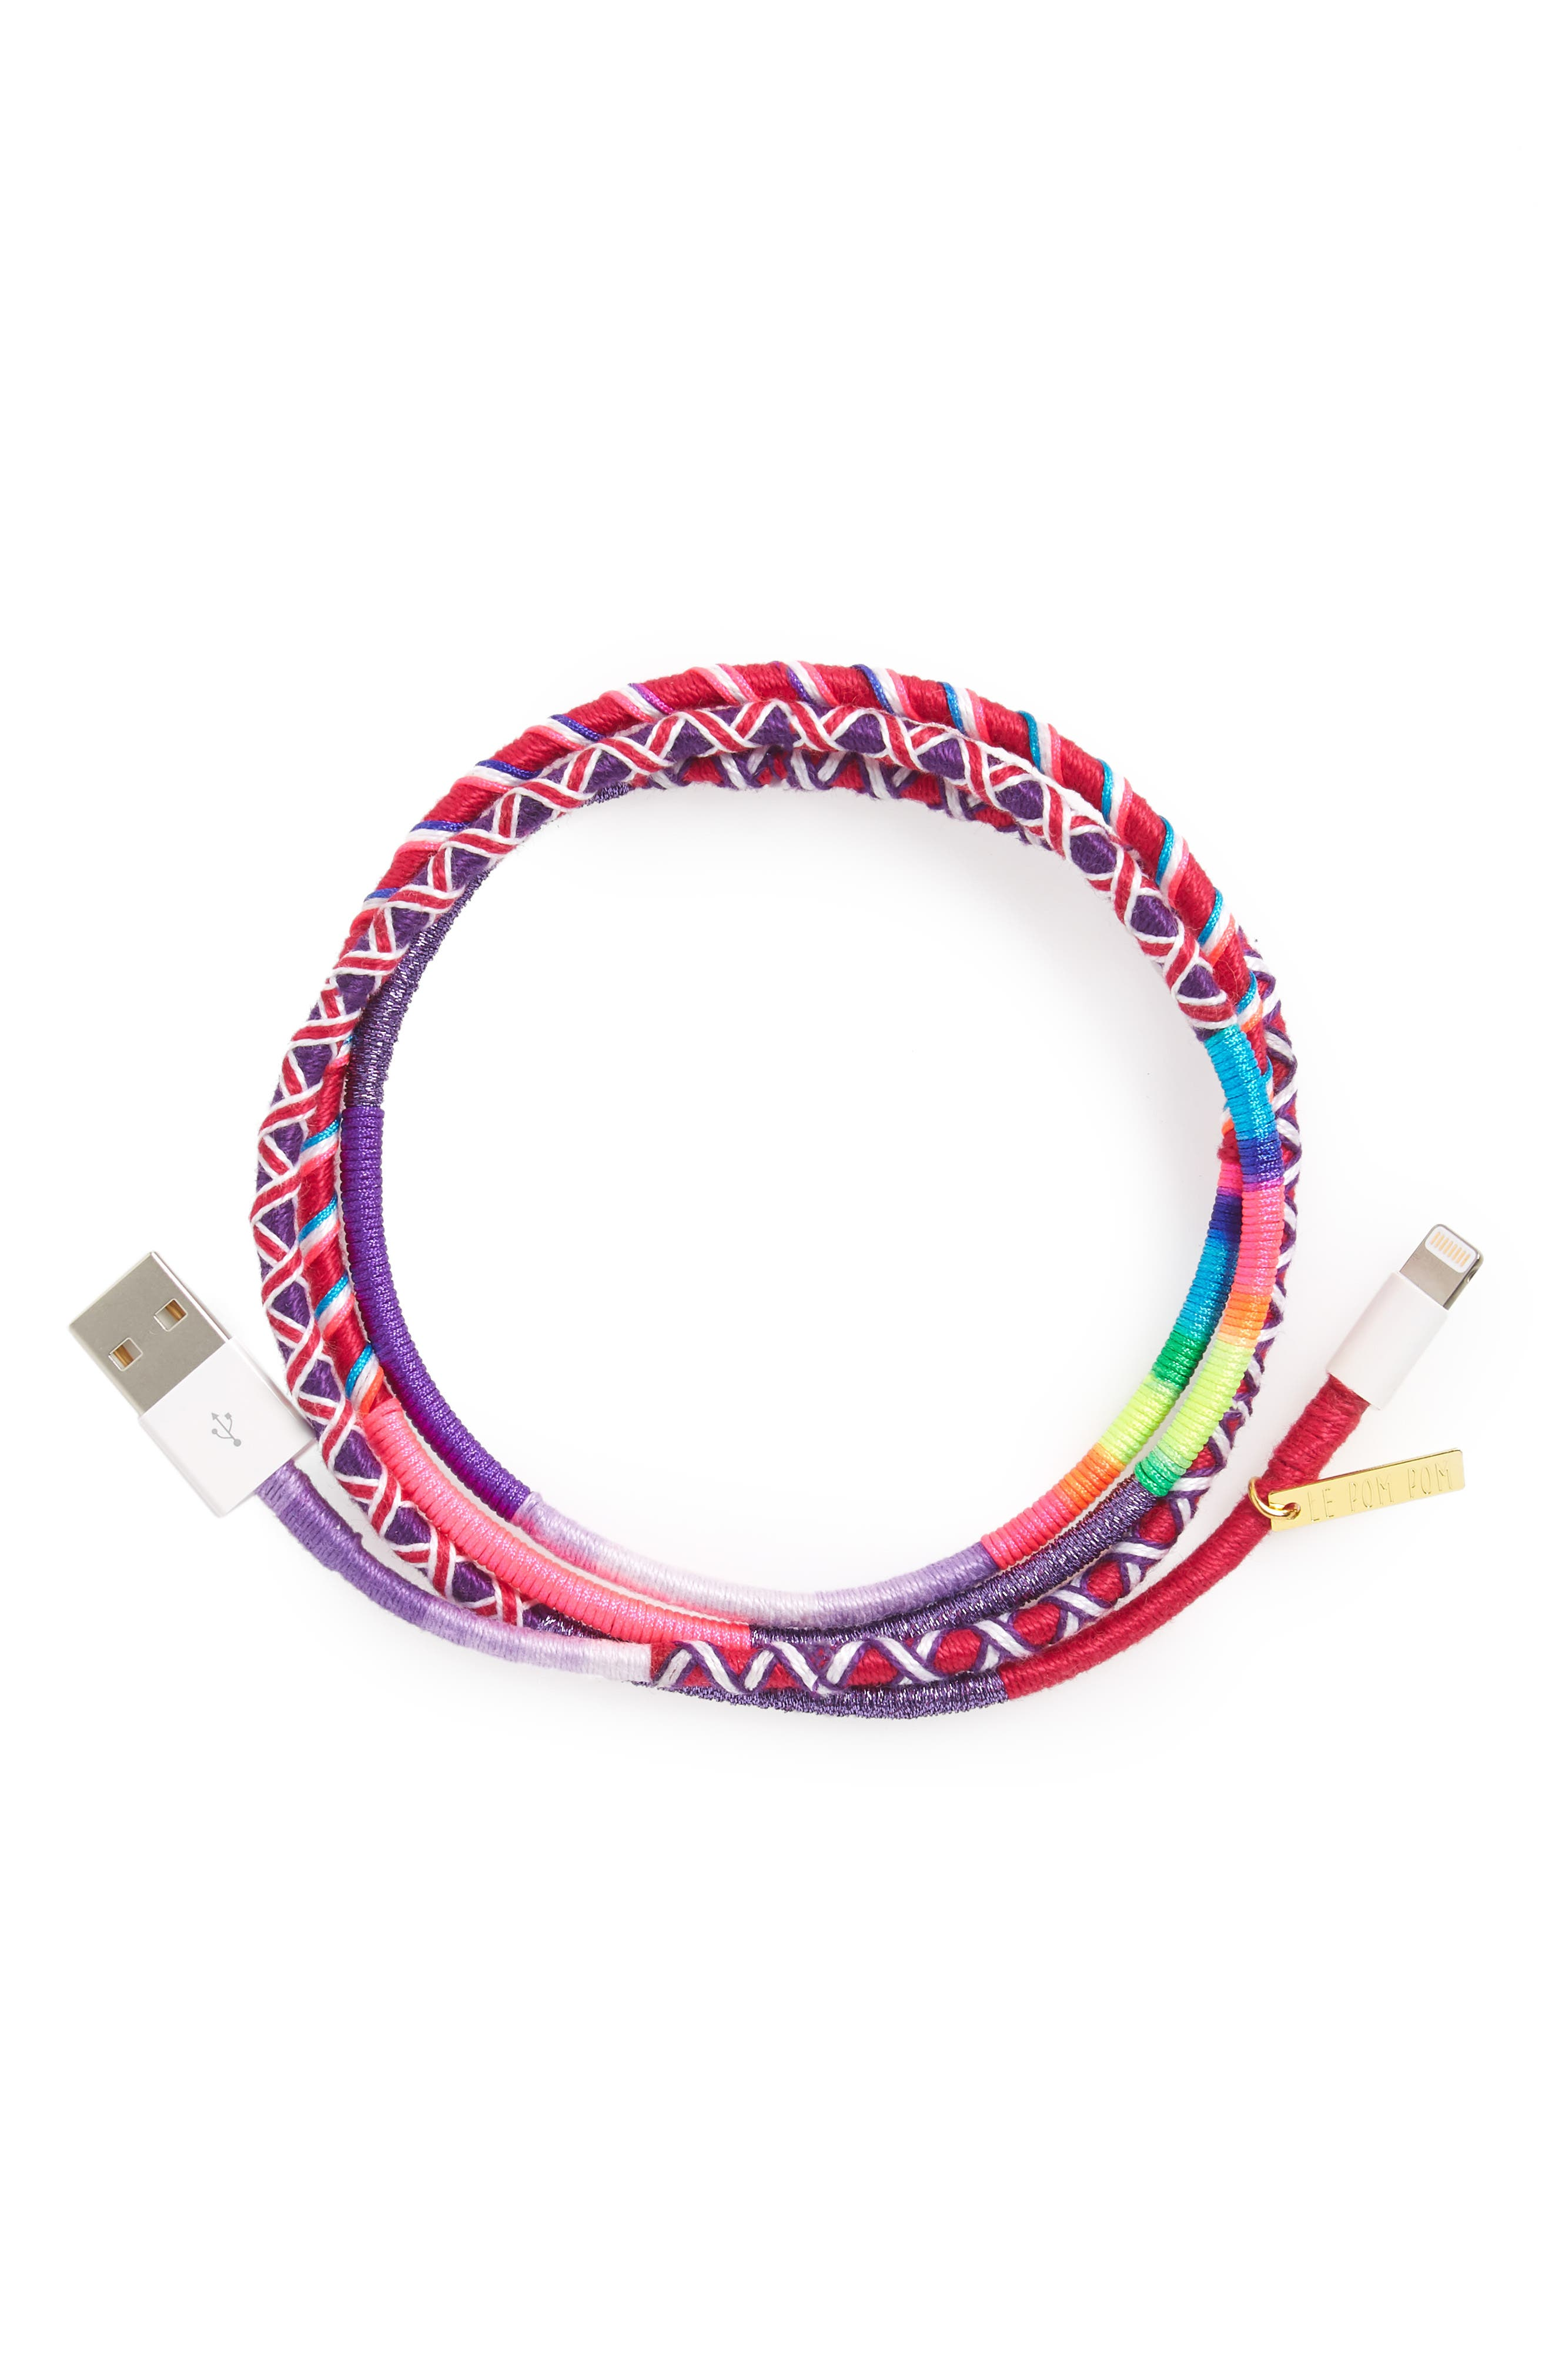 Vicky Hand-Wrapped iPhone Charging Cord,                             Main thumbnail 1, color,